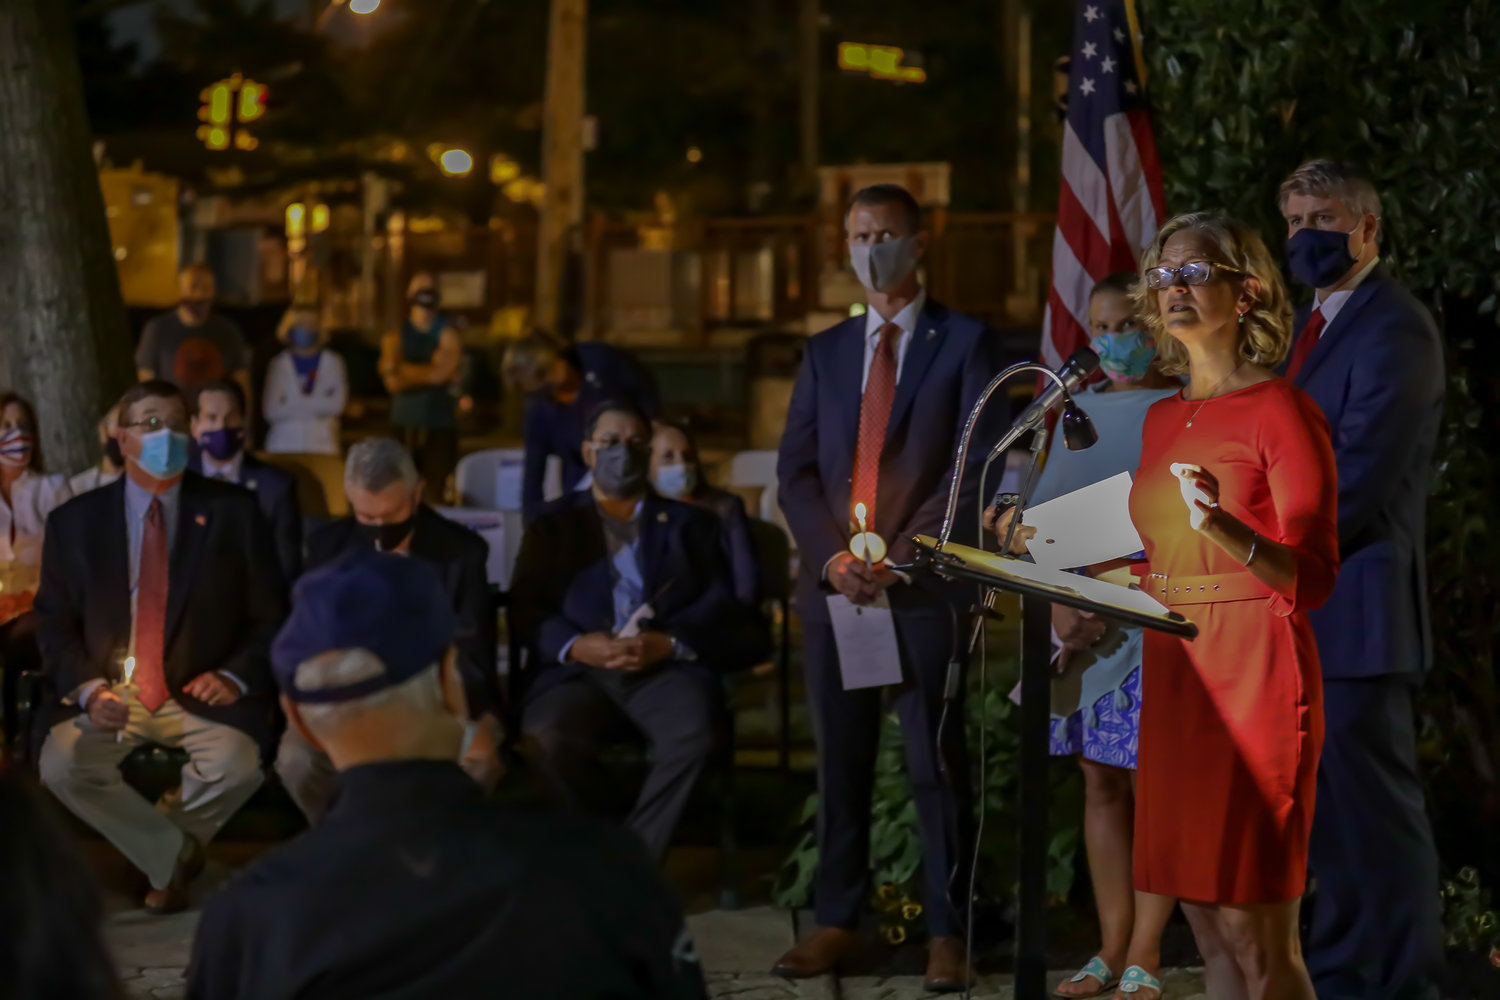 County Executive Laura Curran, at lectern, was one of several elected officials to attend Malverne's 9/11 ceremony on Church Street last Friday.